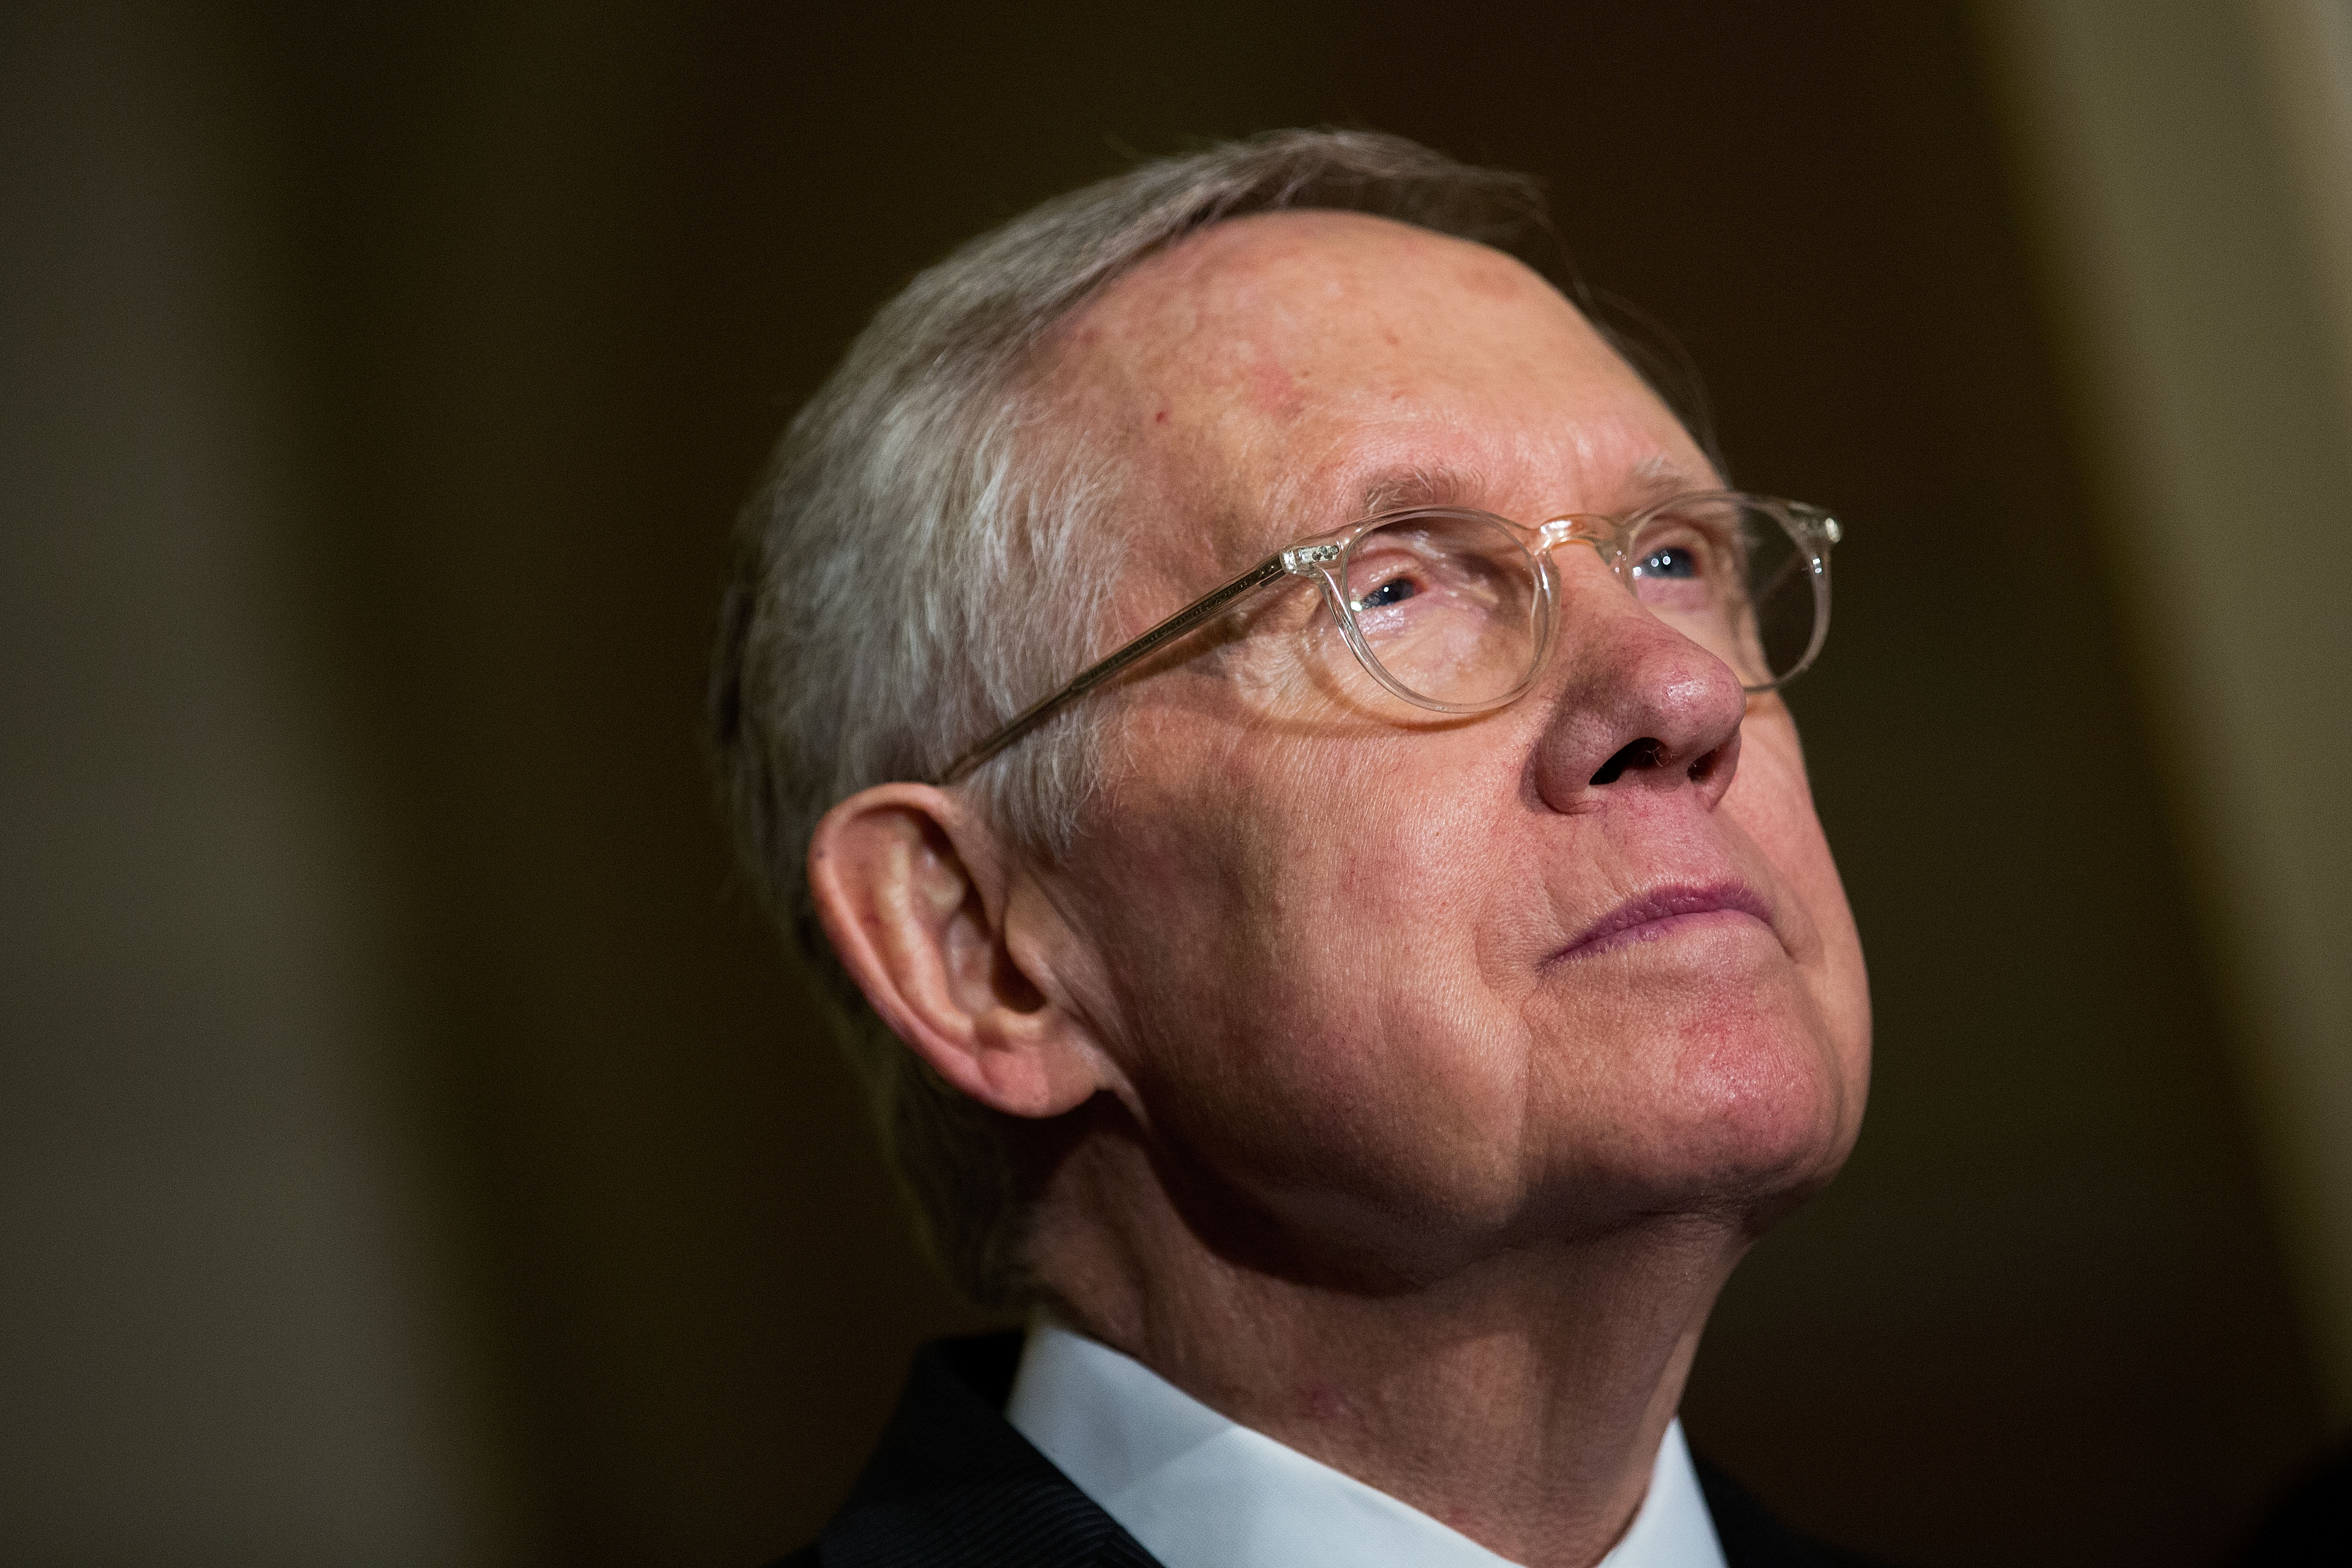 Senate Minority Leader Harry Reid (D-NV) listens to questions from reporters during a news conference after their weekly policy meeting with Senate Republicans, at the U.S. Capitol, May 10, 2016, in Washington, DC.